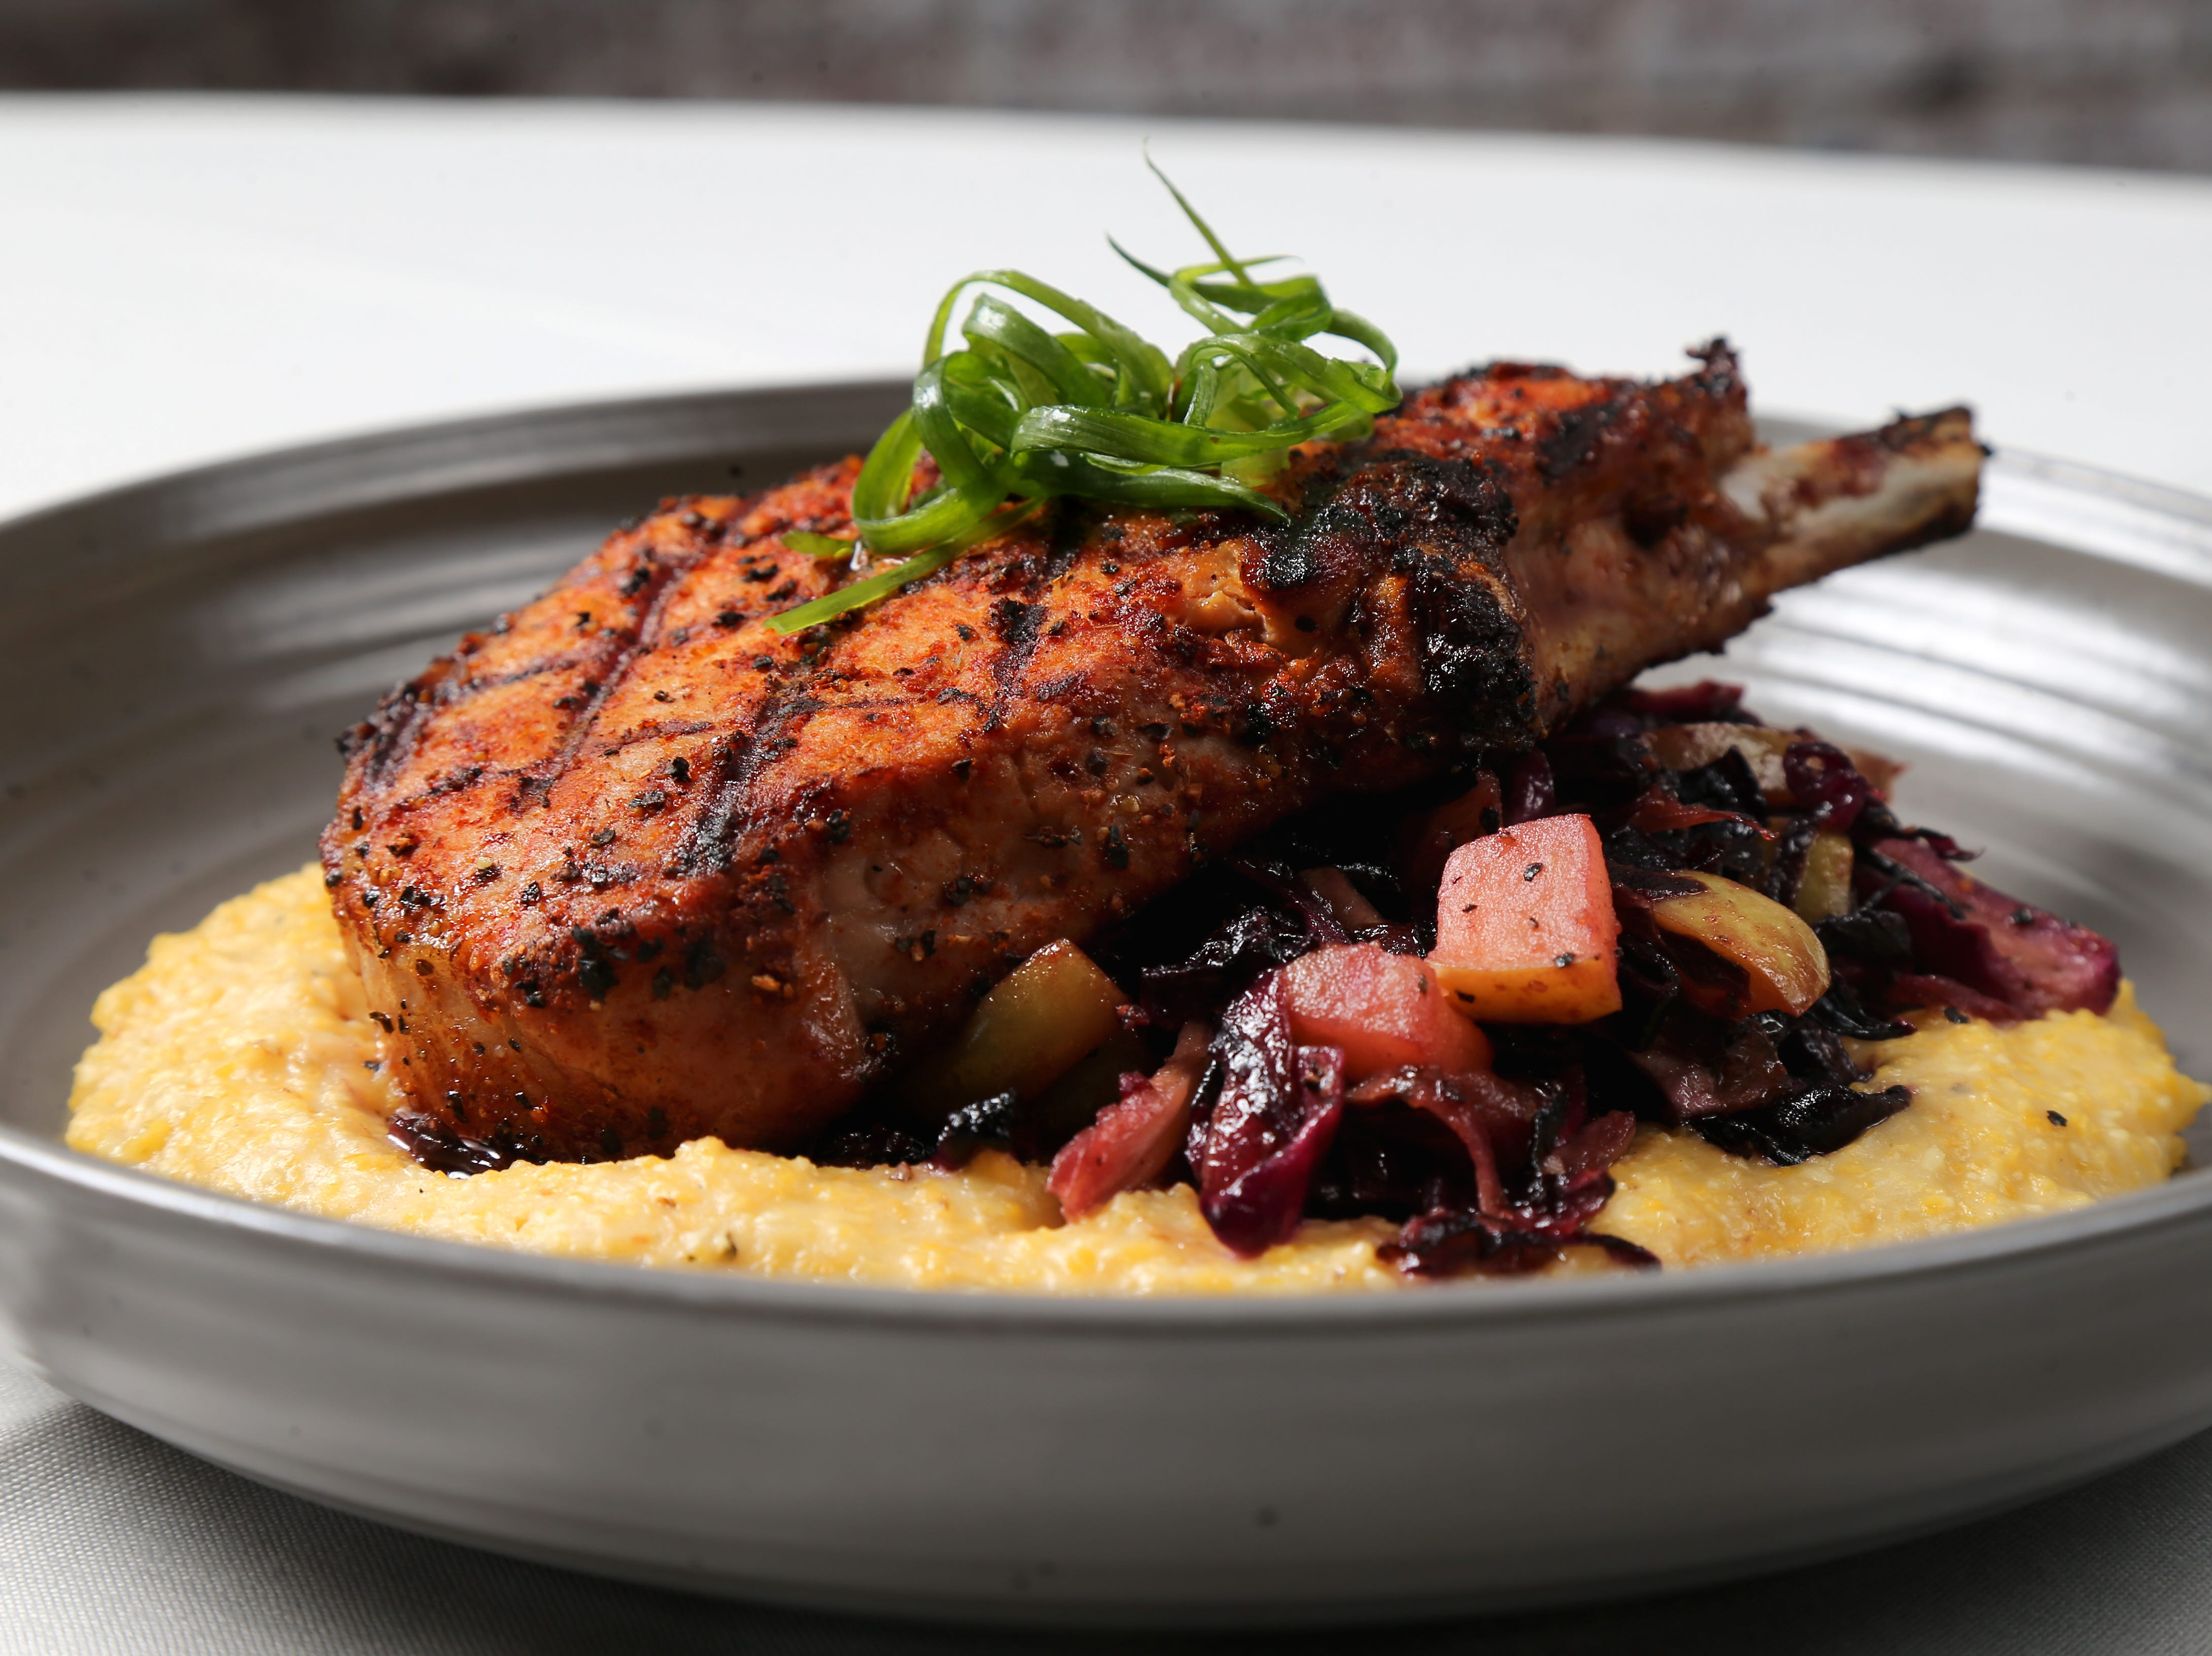 Allegiance Frenched Pork Chop dry-rubbed and smoked, cheddar Geechie Boy grits, hot apple slaw, bacon vinaigrette, pictured, Friday, Jan. 25, 2019, at Tano Bistro restaurant in Loveland, Ohio.